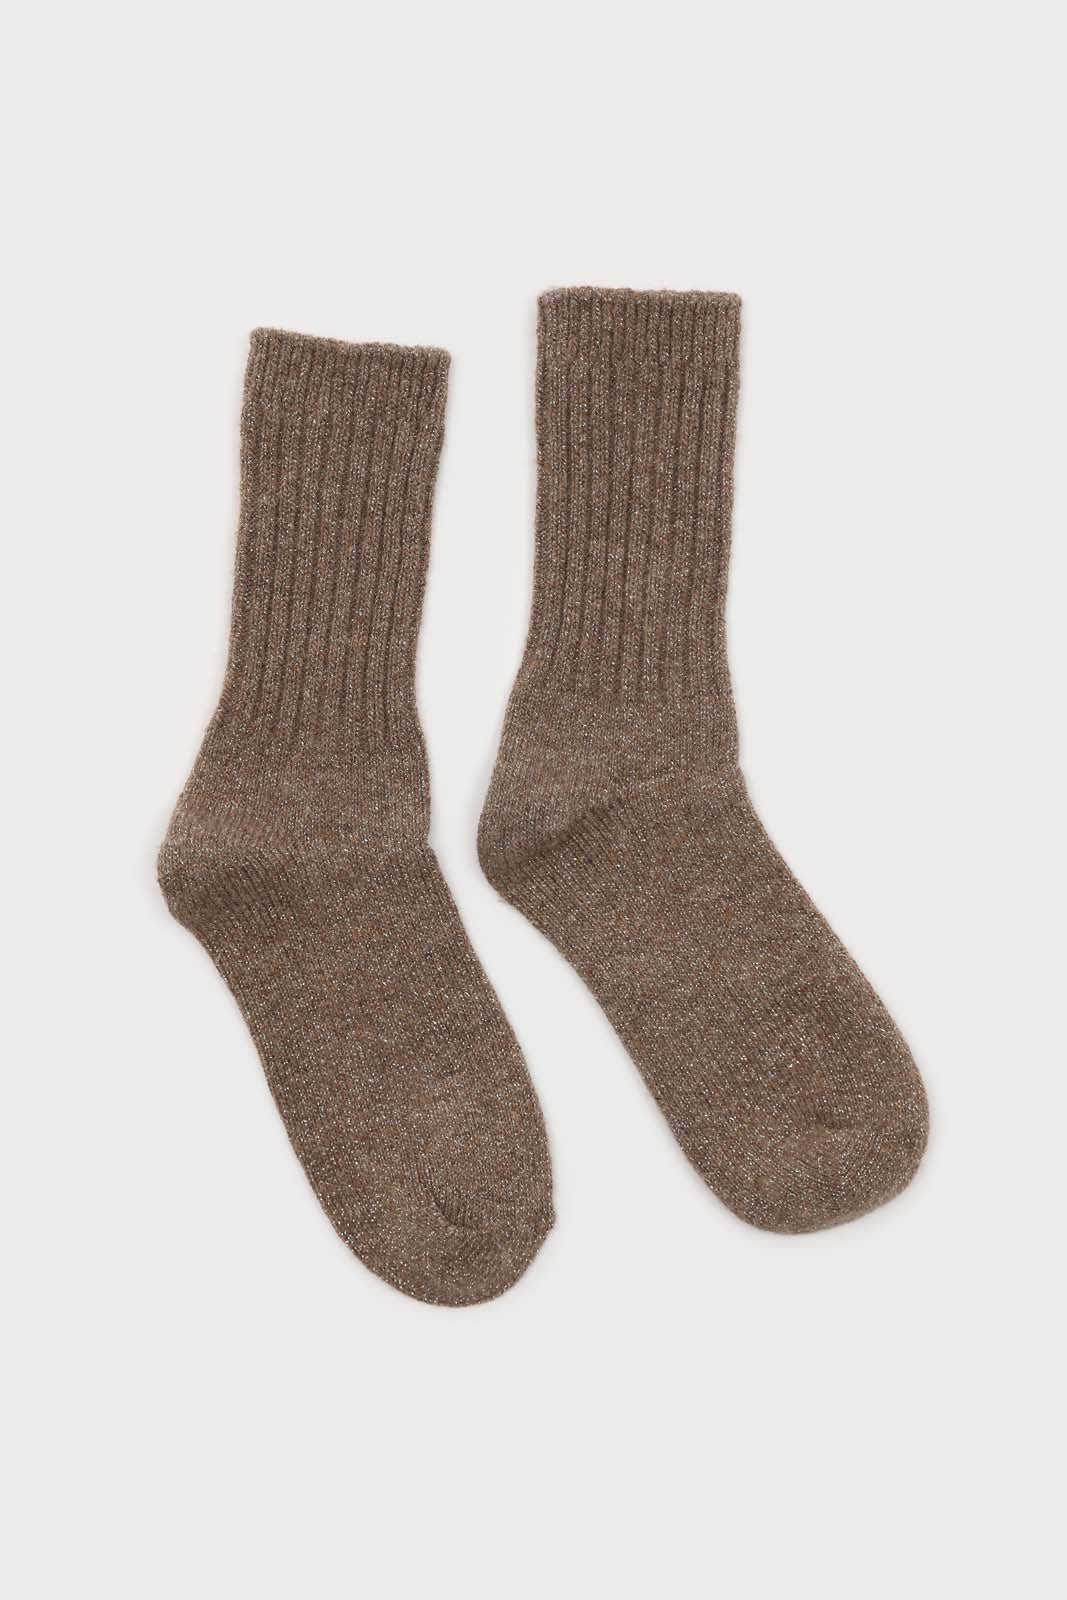 Cocoa and silver glitter ribbed long wool socks2